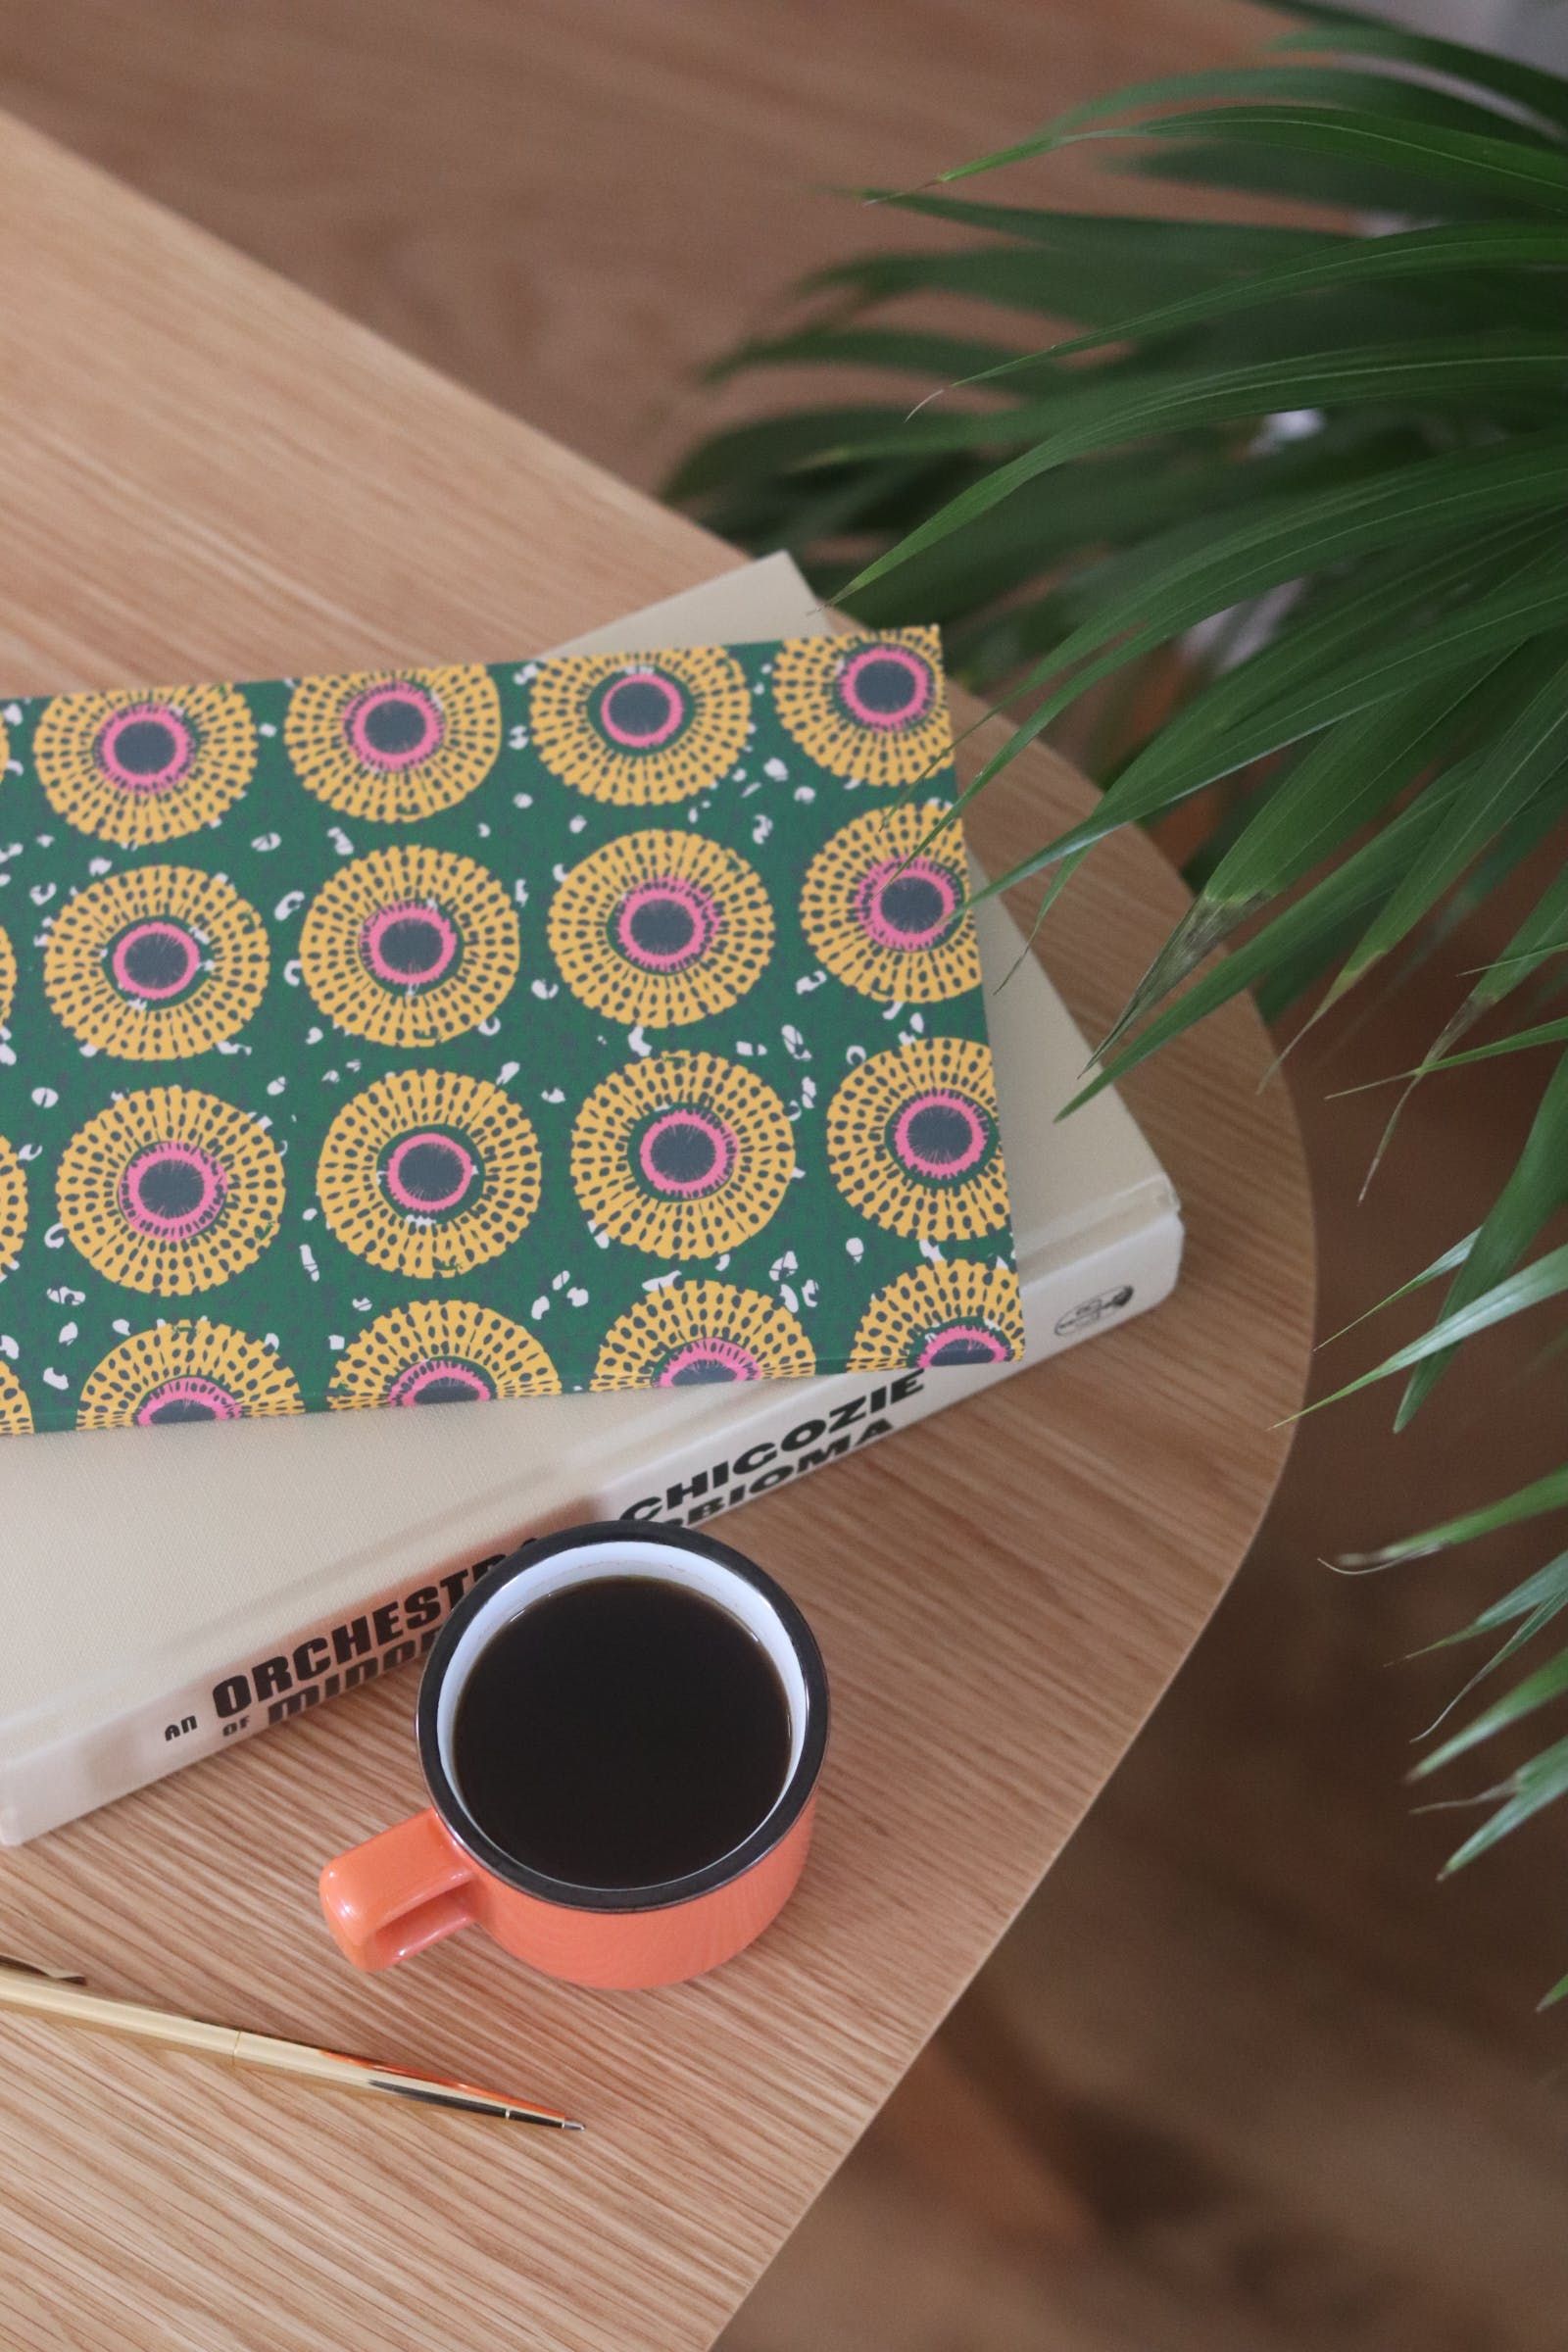 African print notebook next to a cup of coffee